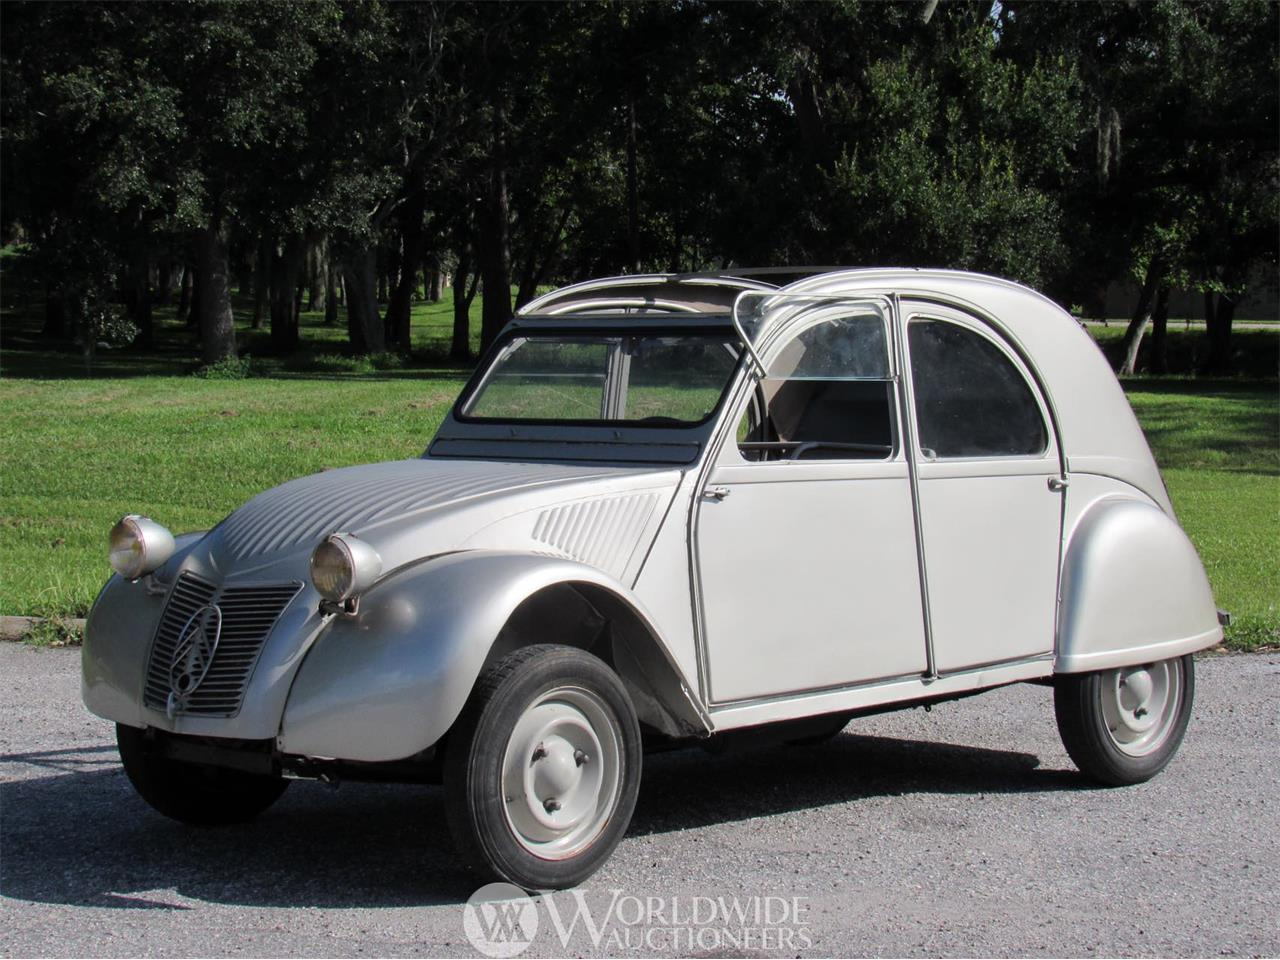 Classic Citroen for Sale on ClassicCars.com